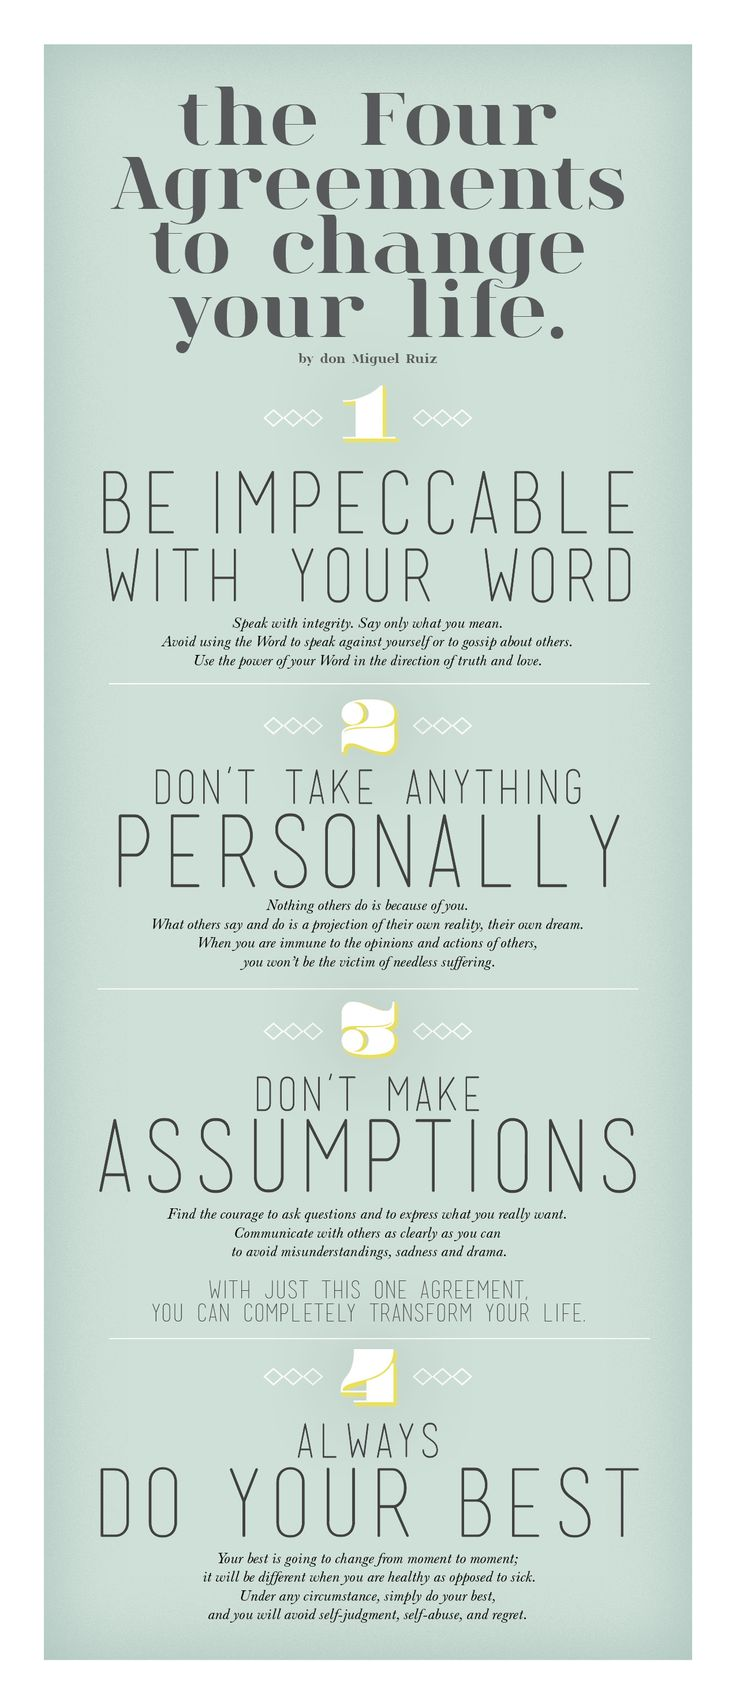 Summary, Analysis, and Review of Don Miguel Ruiz's The Four Agreements